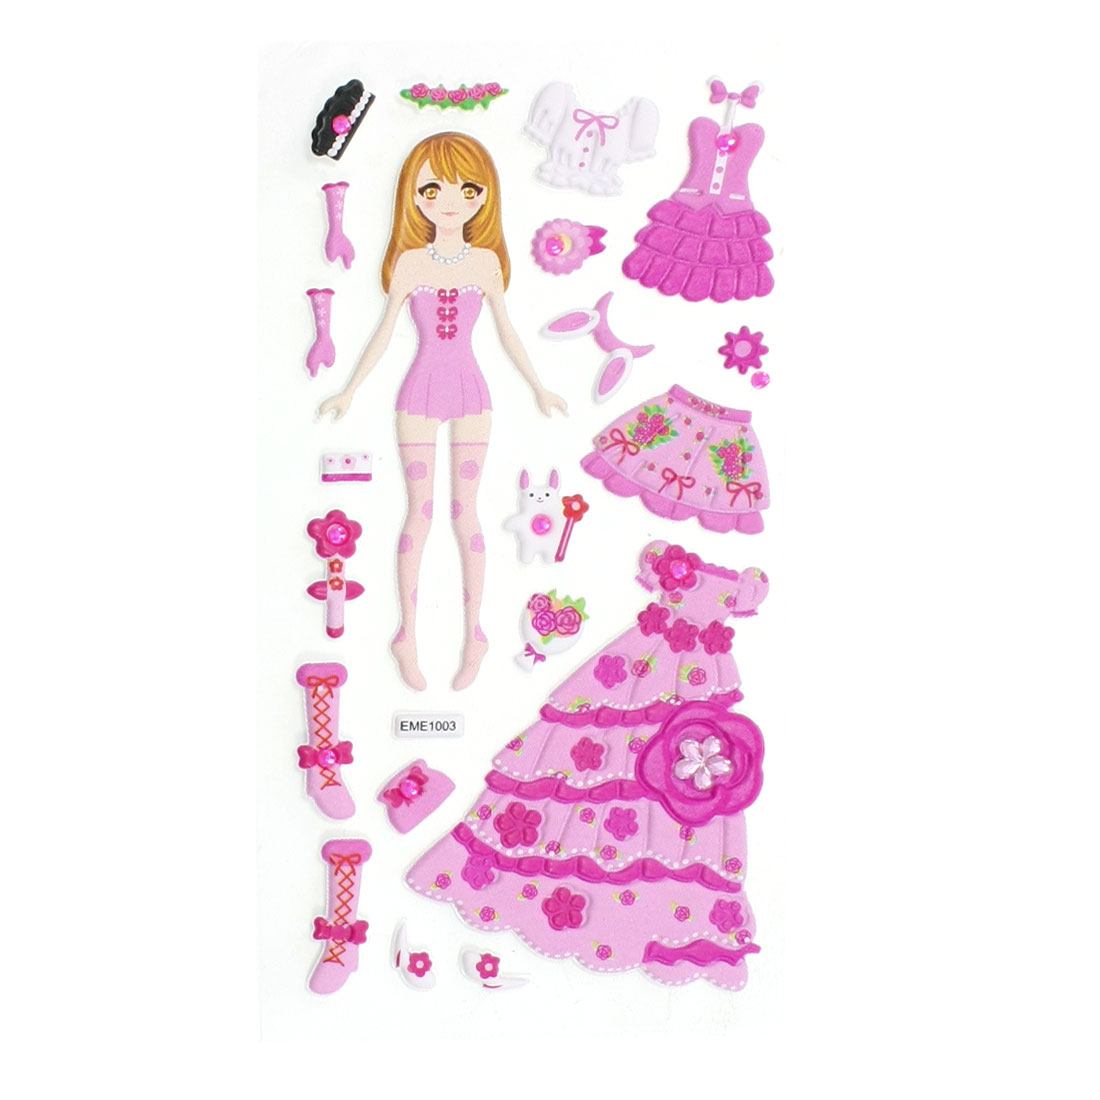 Kids Plastic DIY Rhinestone Inlaid Dress Up Princess 3D Sticker Sheet Pink